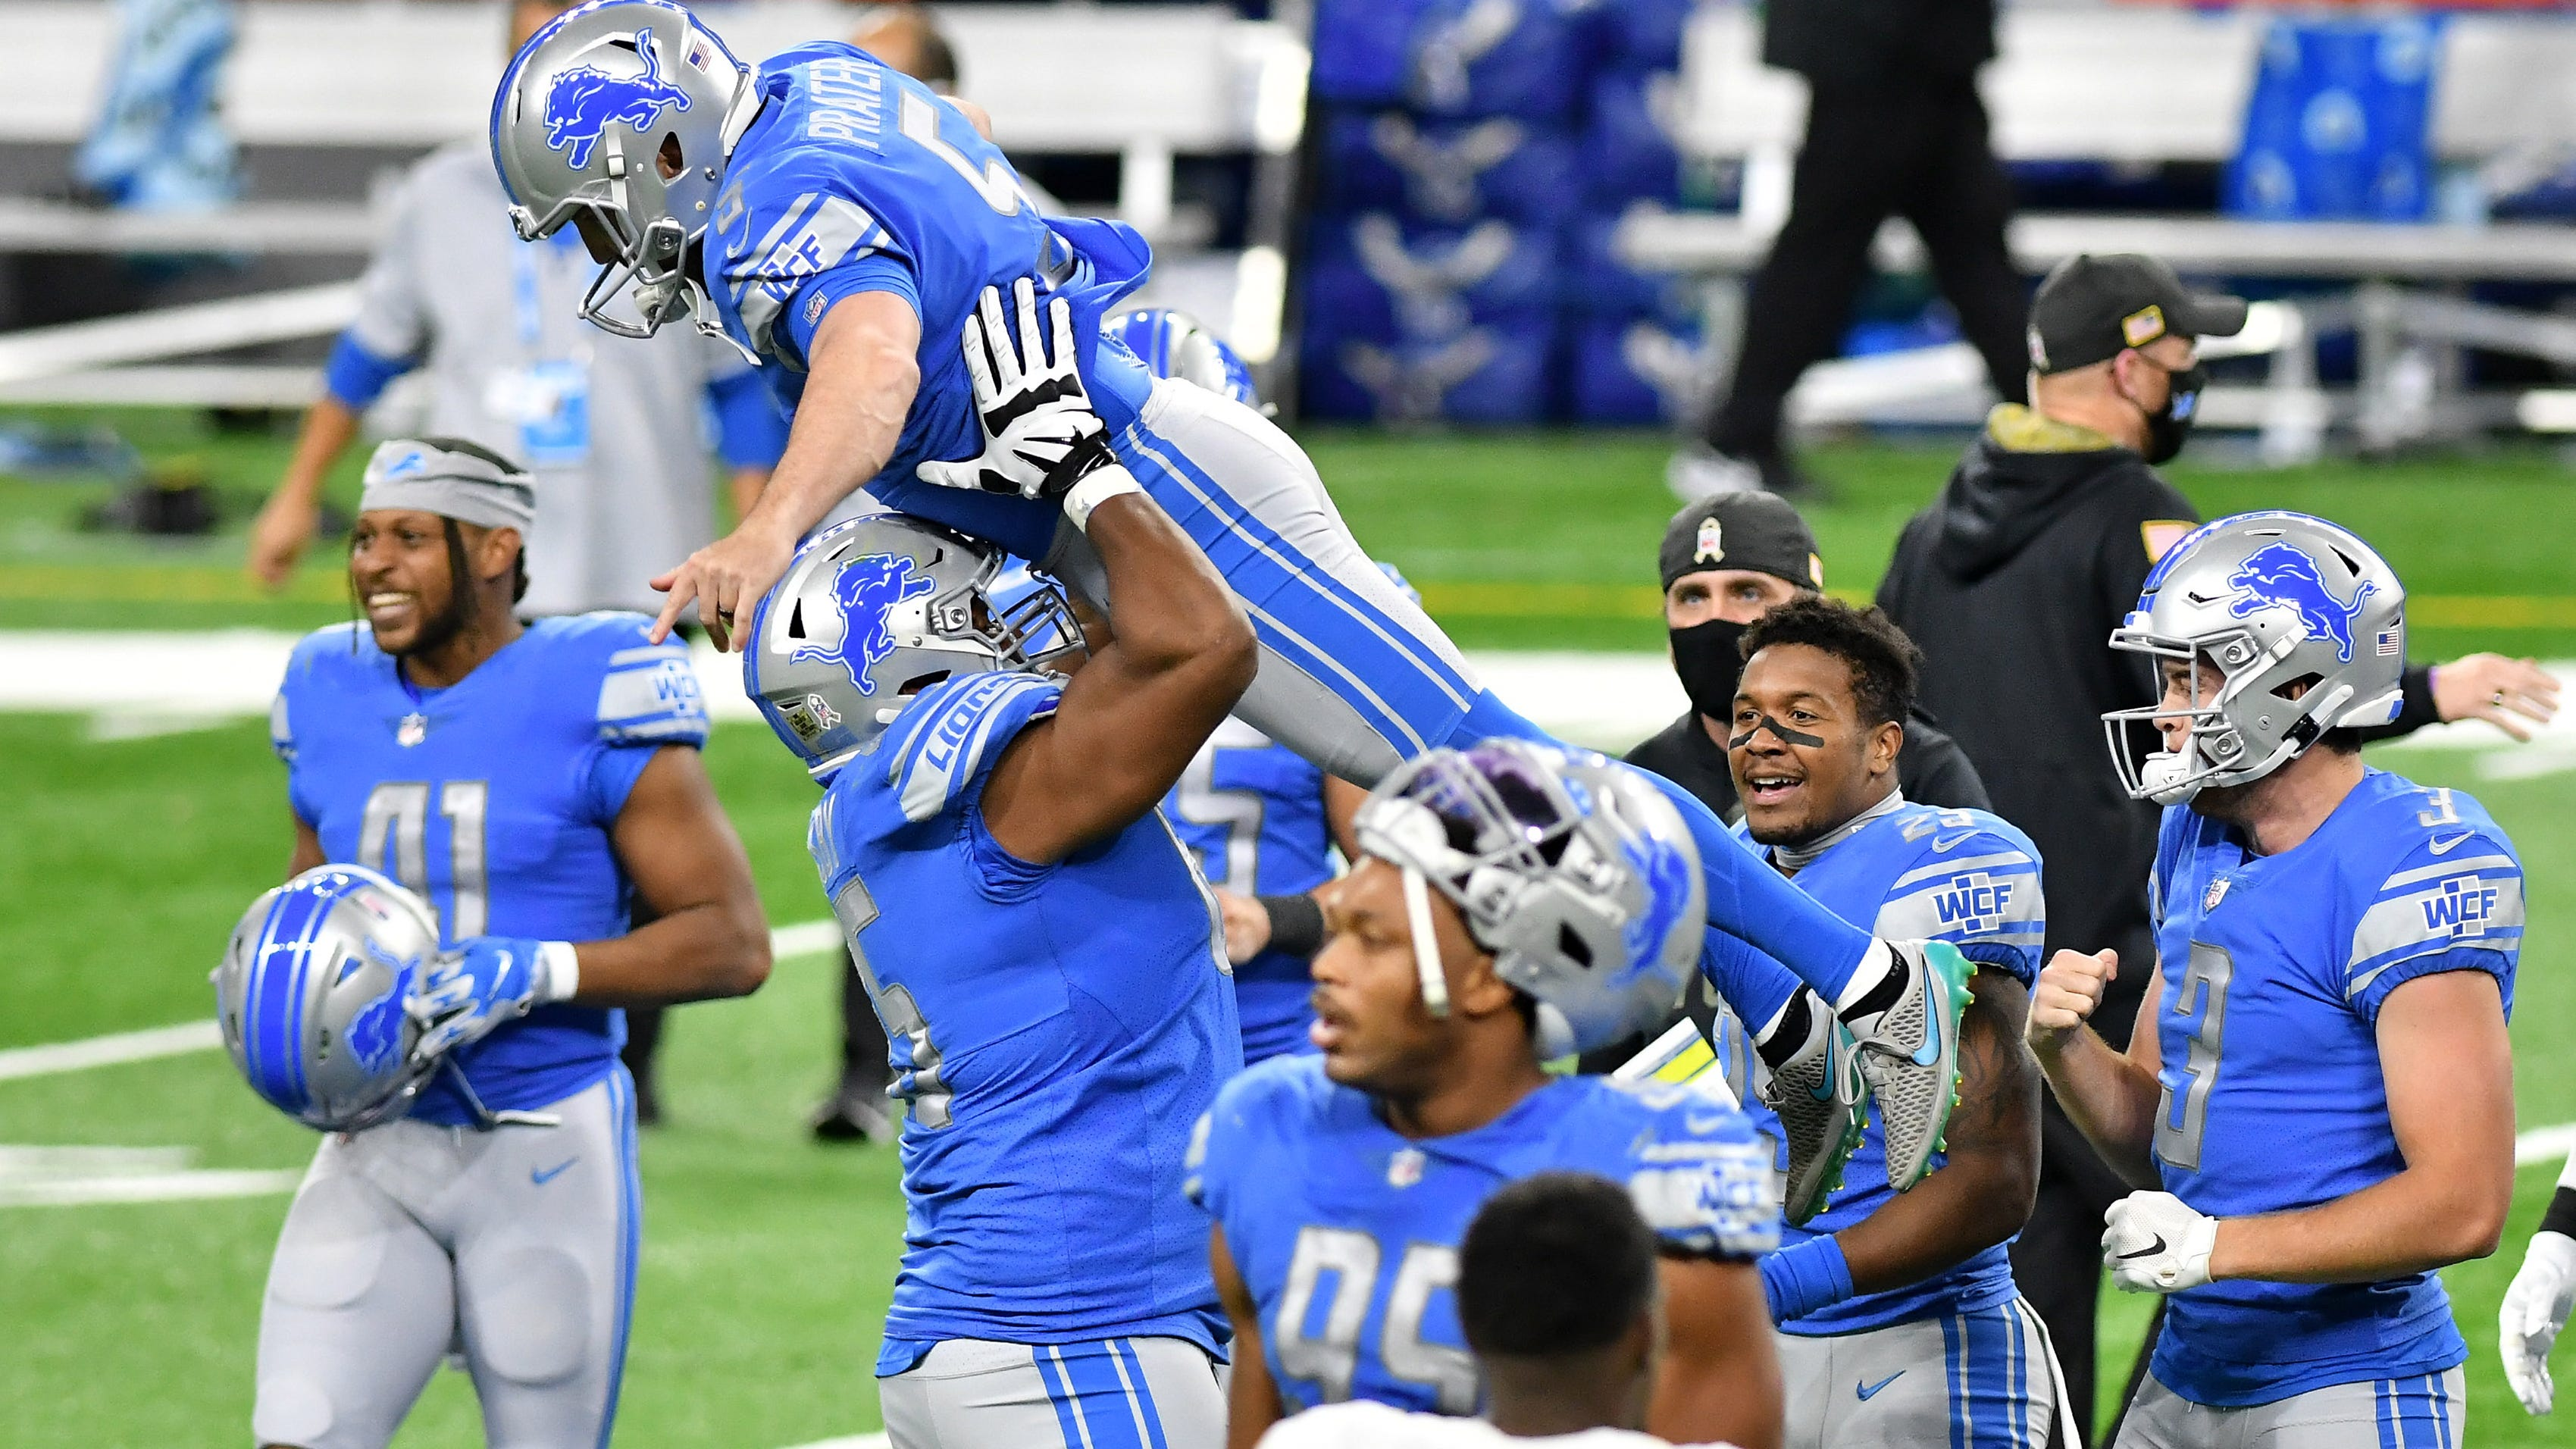 The Lions' Tyrell Crosby celebrates with kicker Matt Prater after the winning field goal as time expires.